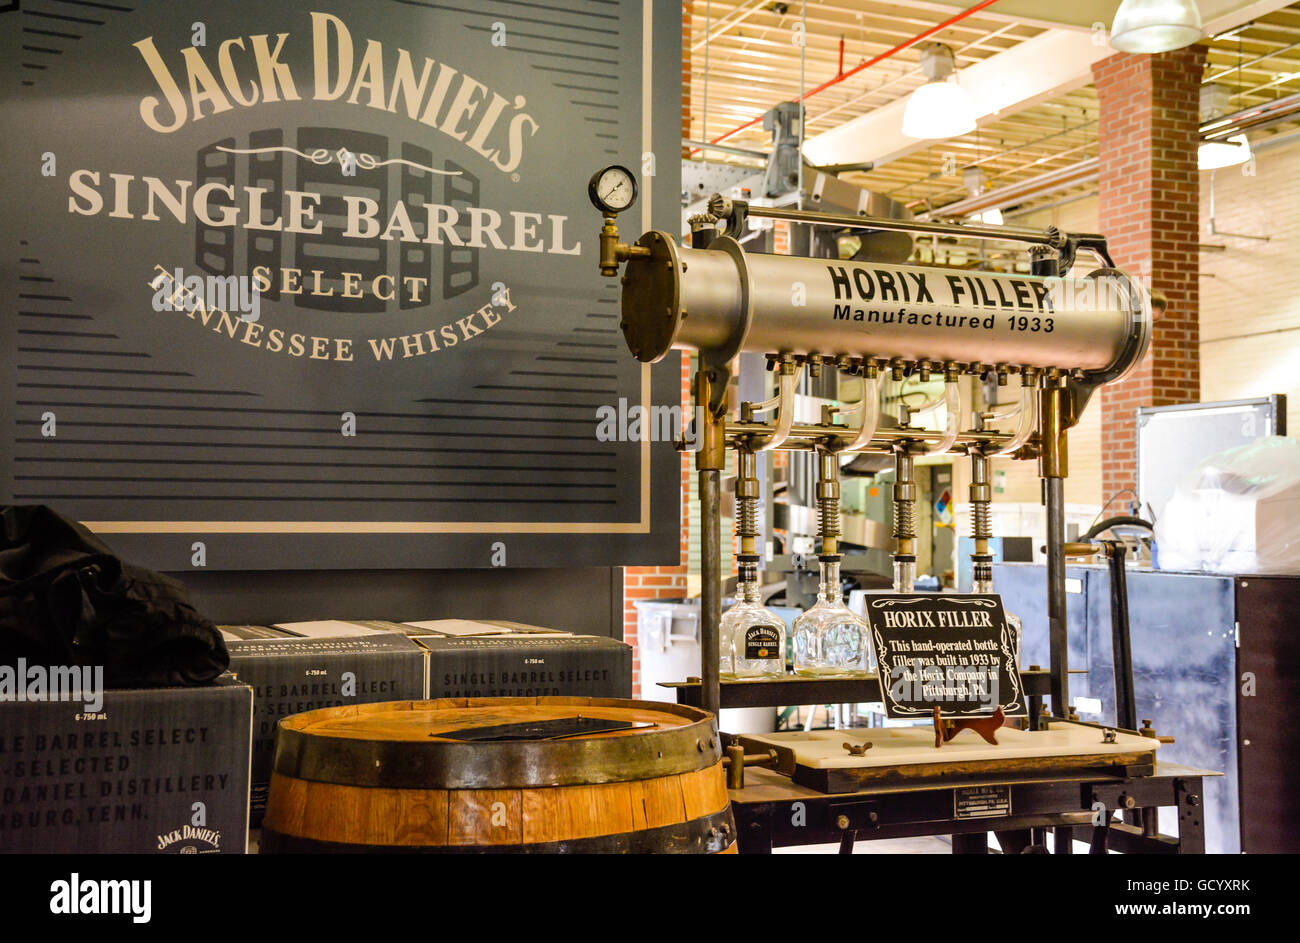 inside the white rabbit bottle shop at the jack daniel 39 s distillery stock photo royalty free. Black Bedroom Furniture Sets. Home Design Ideas